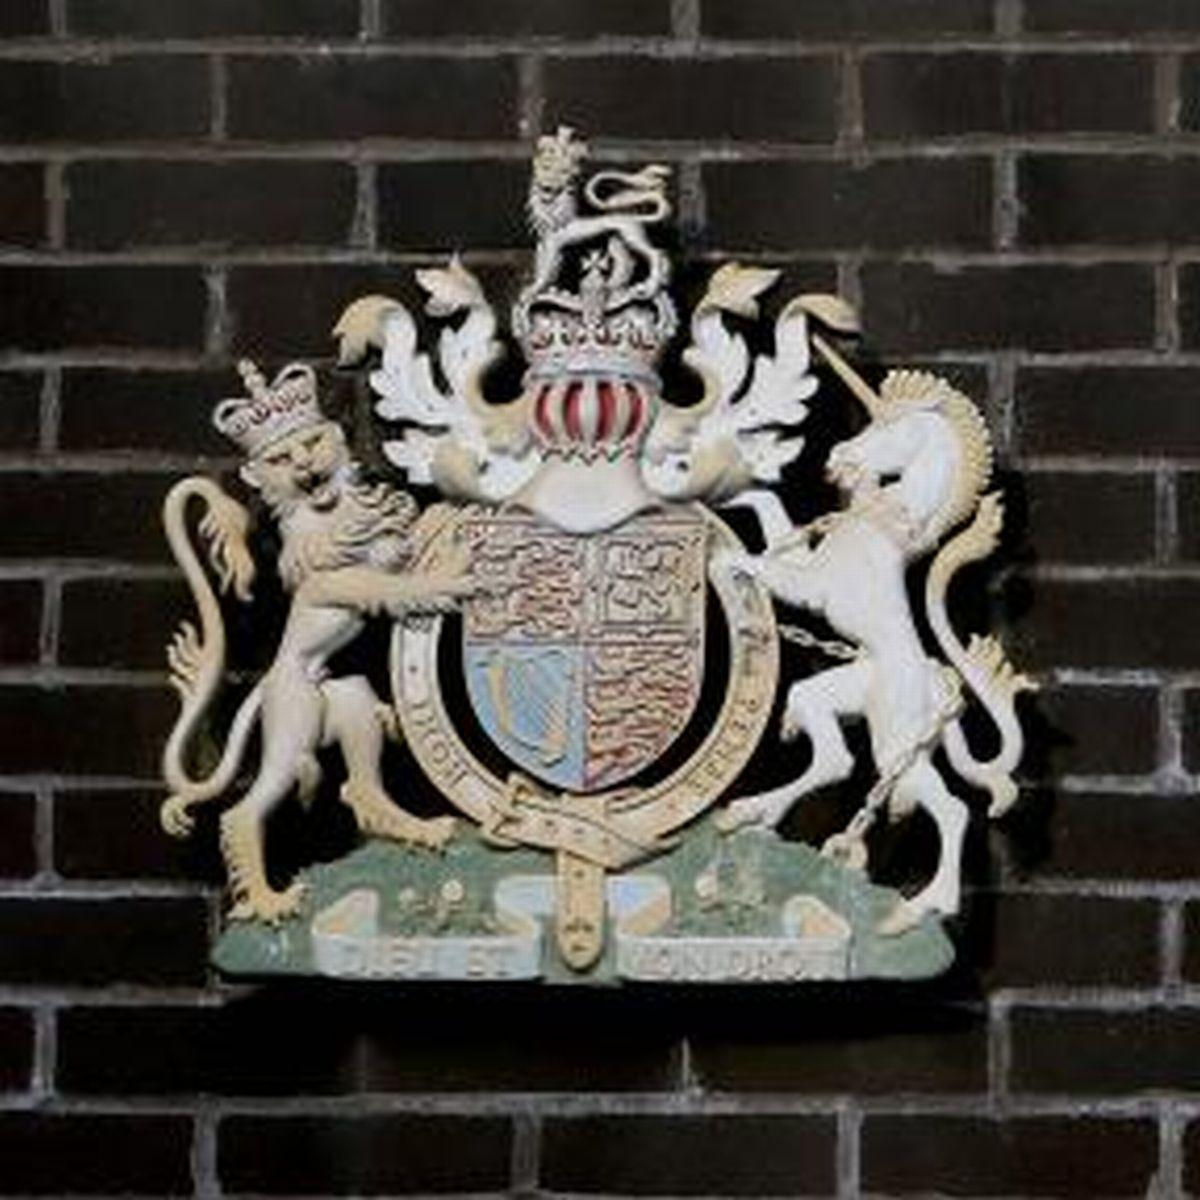 First conviction in Cornwall for illegal subletting of council house